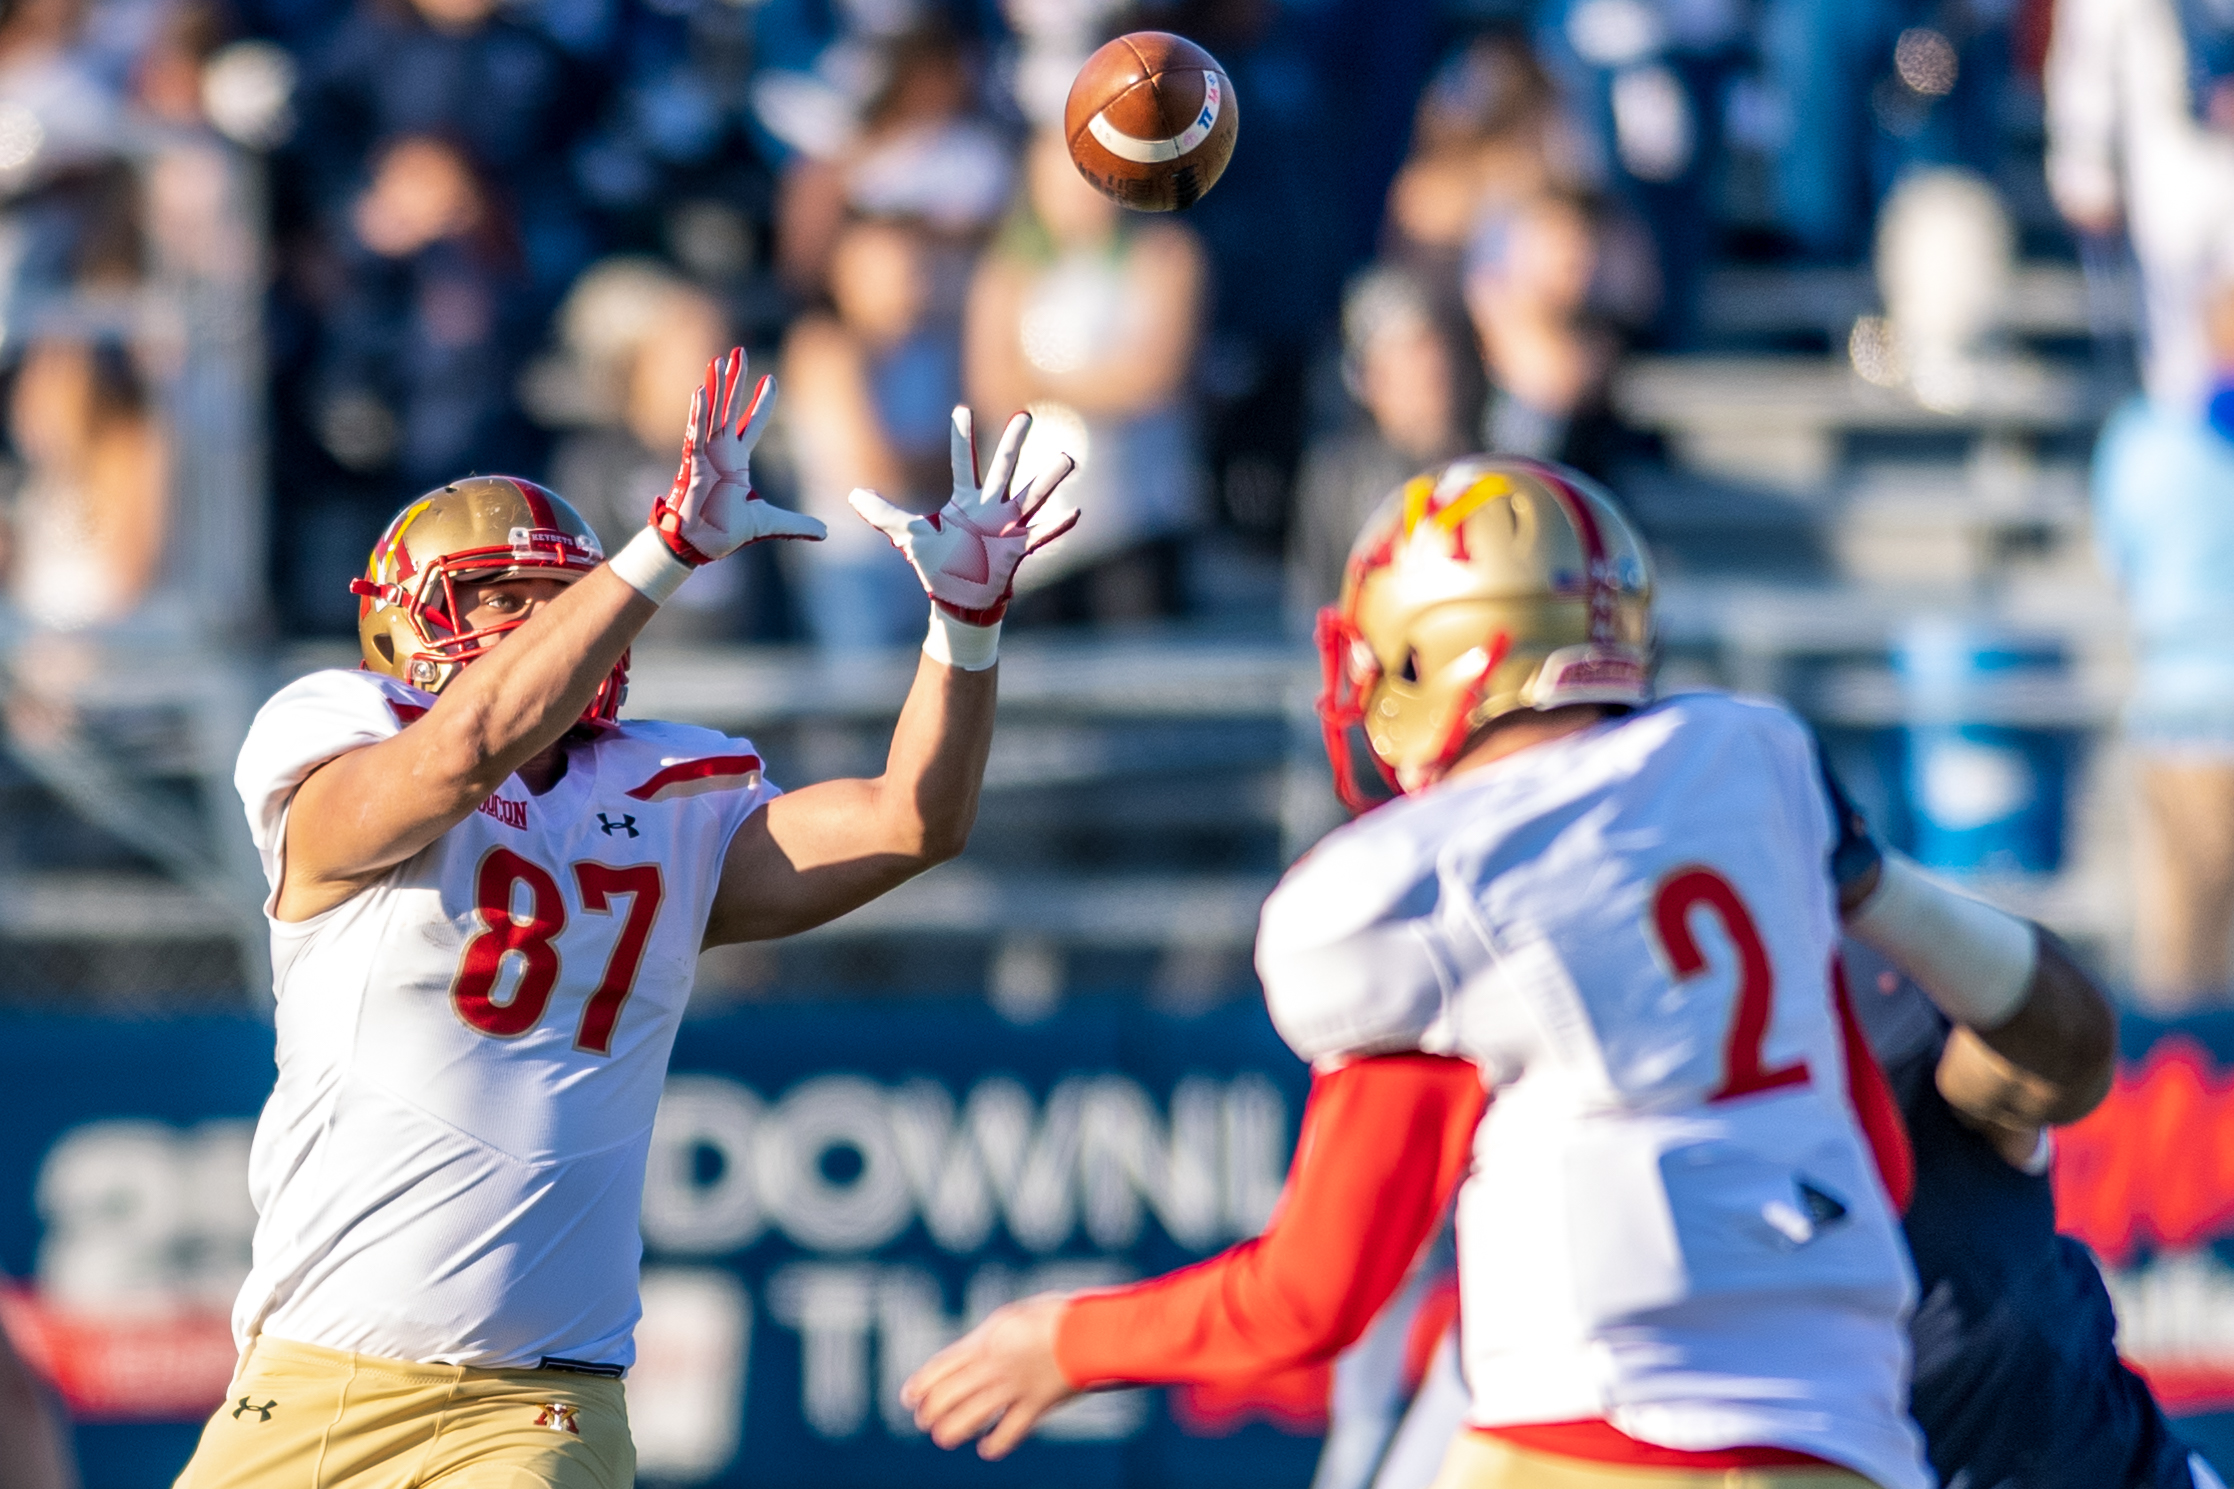 Virginia Military Institute Keydets tight end Colby Rider (87) catches a pass from Virginia Military Institute Keydets quarterback Reece Udinski (2) during the Saturday, Nov. 17, 2018 game held at Old Dominion University in Norfolk, Virginia. Old Dominion leads VMI 49 to 0 at halftime.